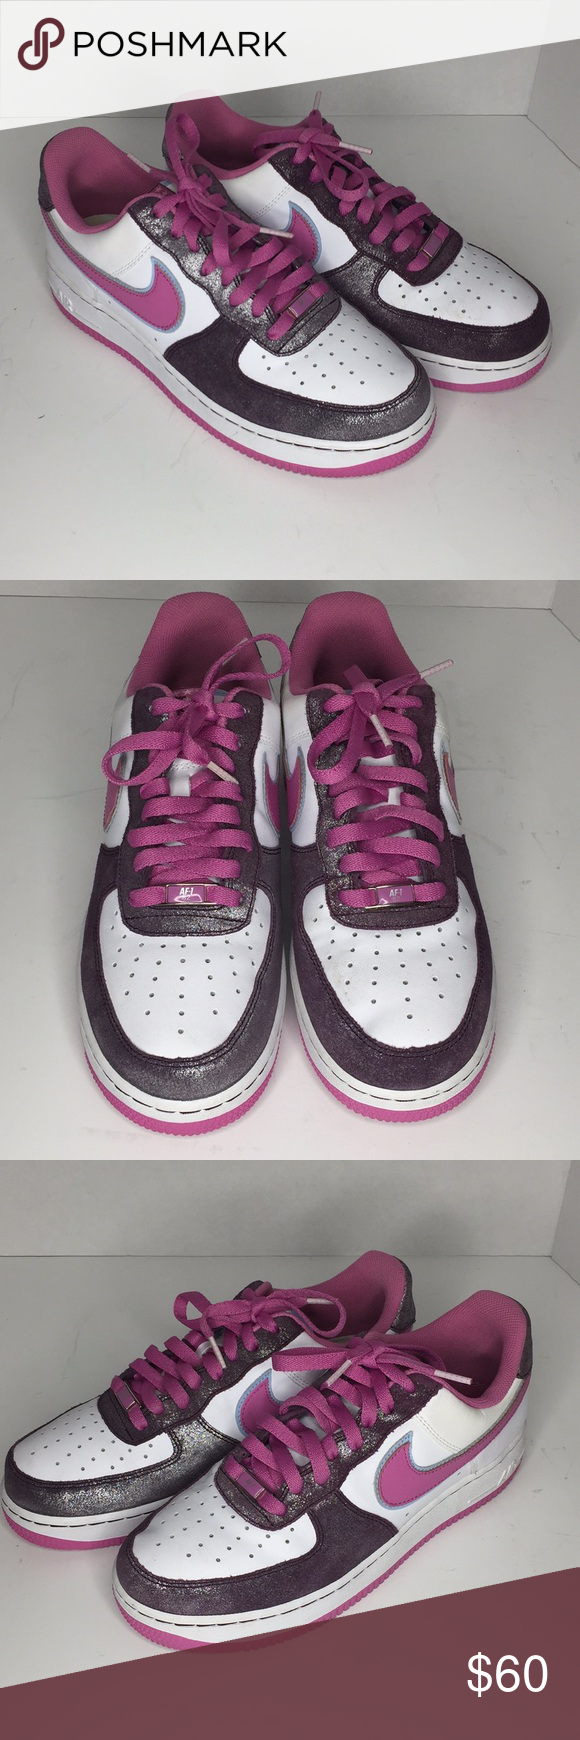 best authentic 93403 7ccdd Nike AF-1 XXV women s size 9.5 shoe Like new Nike Air Force one 25th